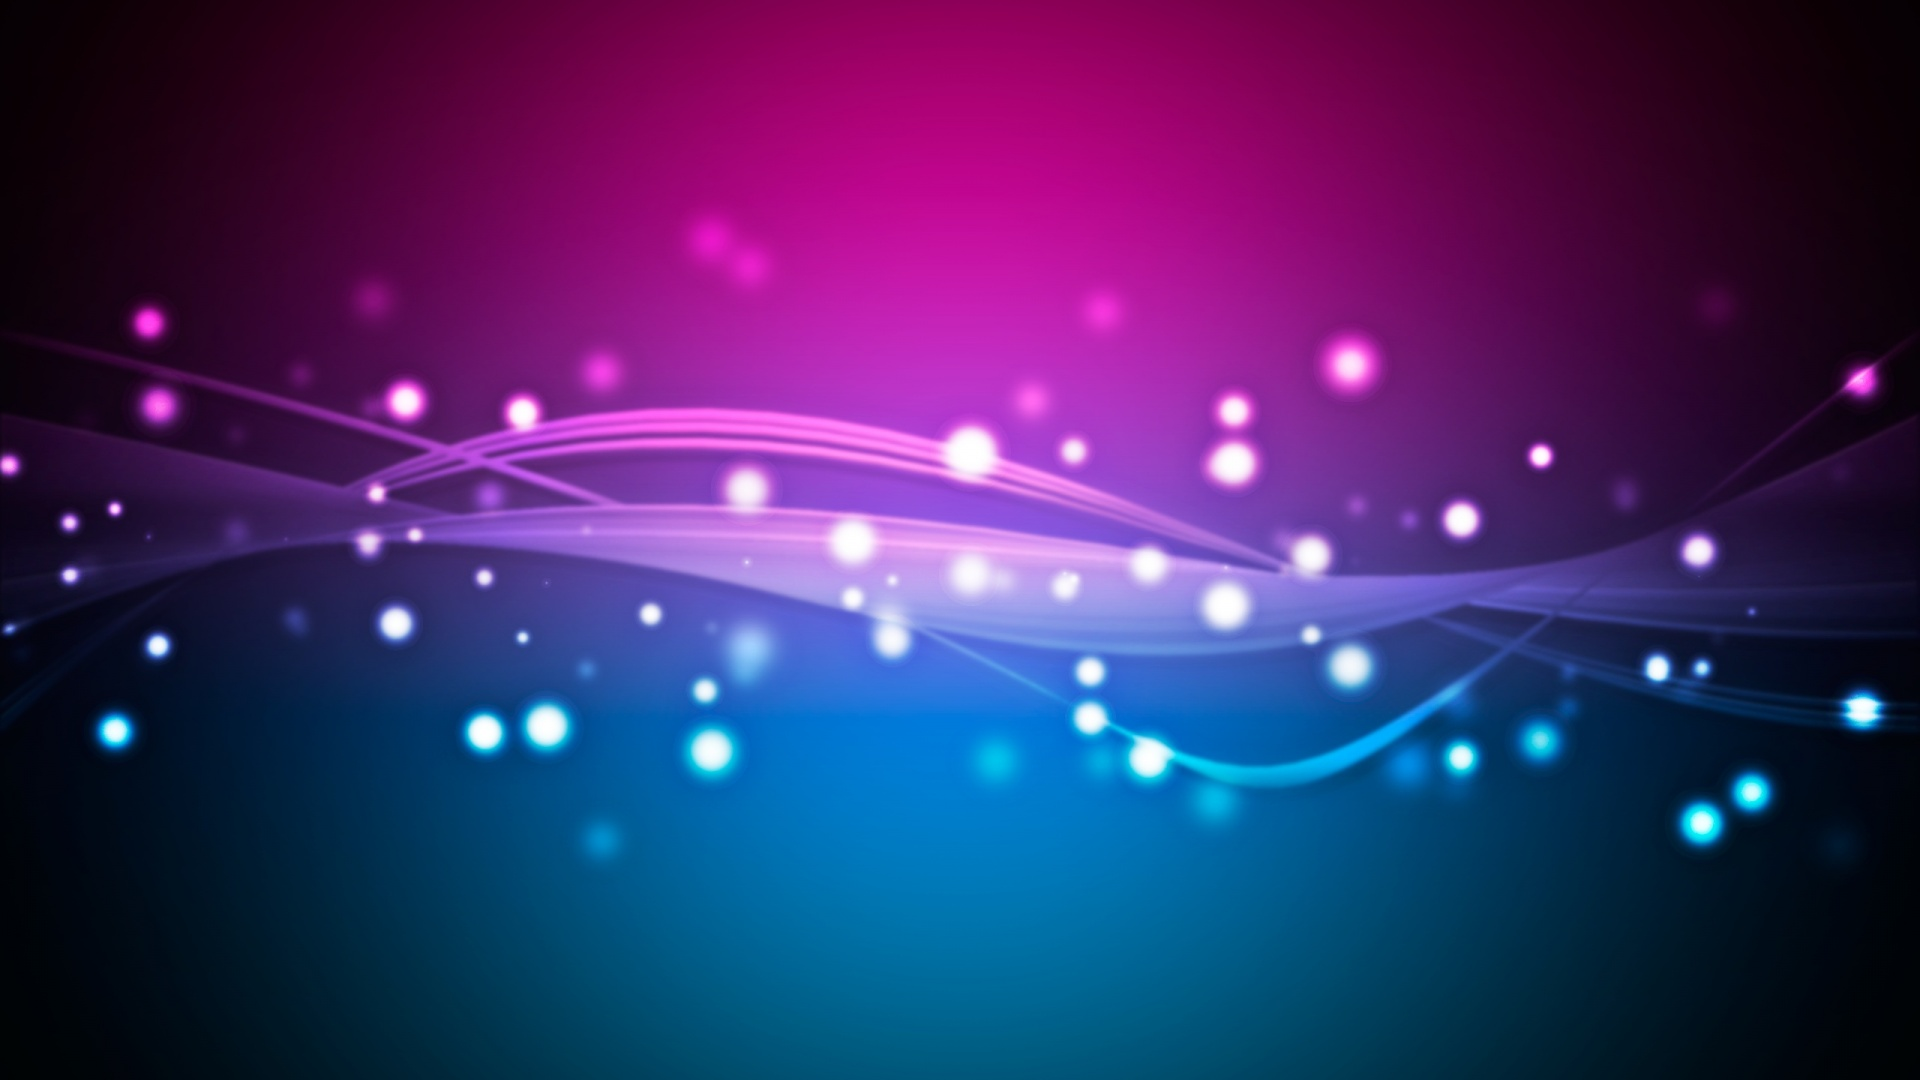 abstract waves light background